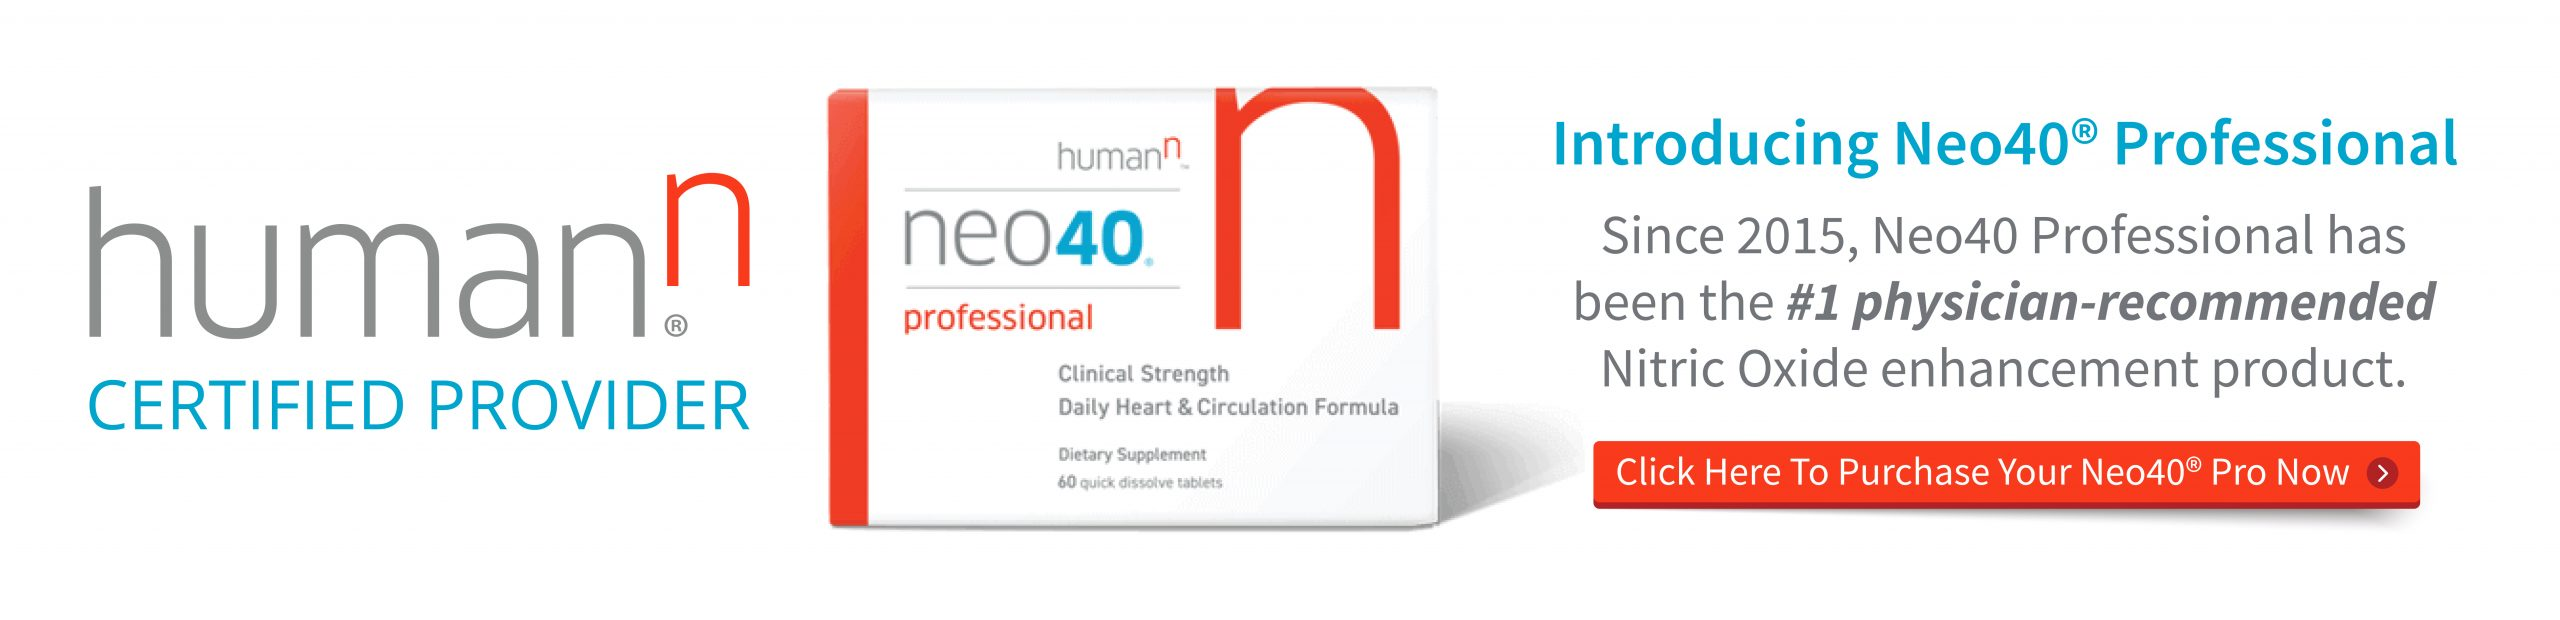 Human n certified provider - introducing Neo40 Professional - since 2015 neo40 professional has been the #1 physician-recommended nitric oxide enhancement product